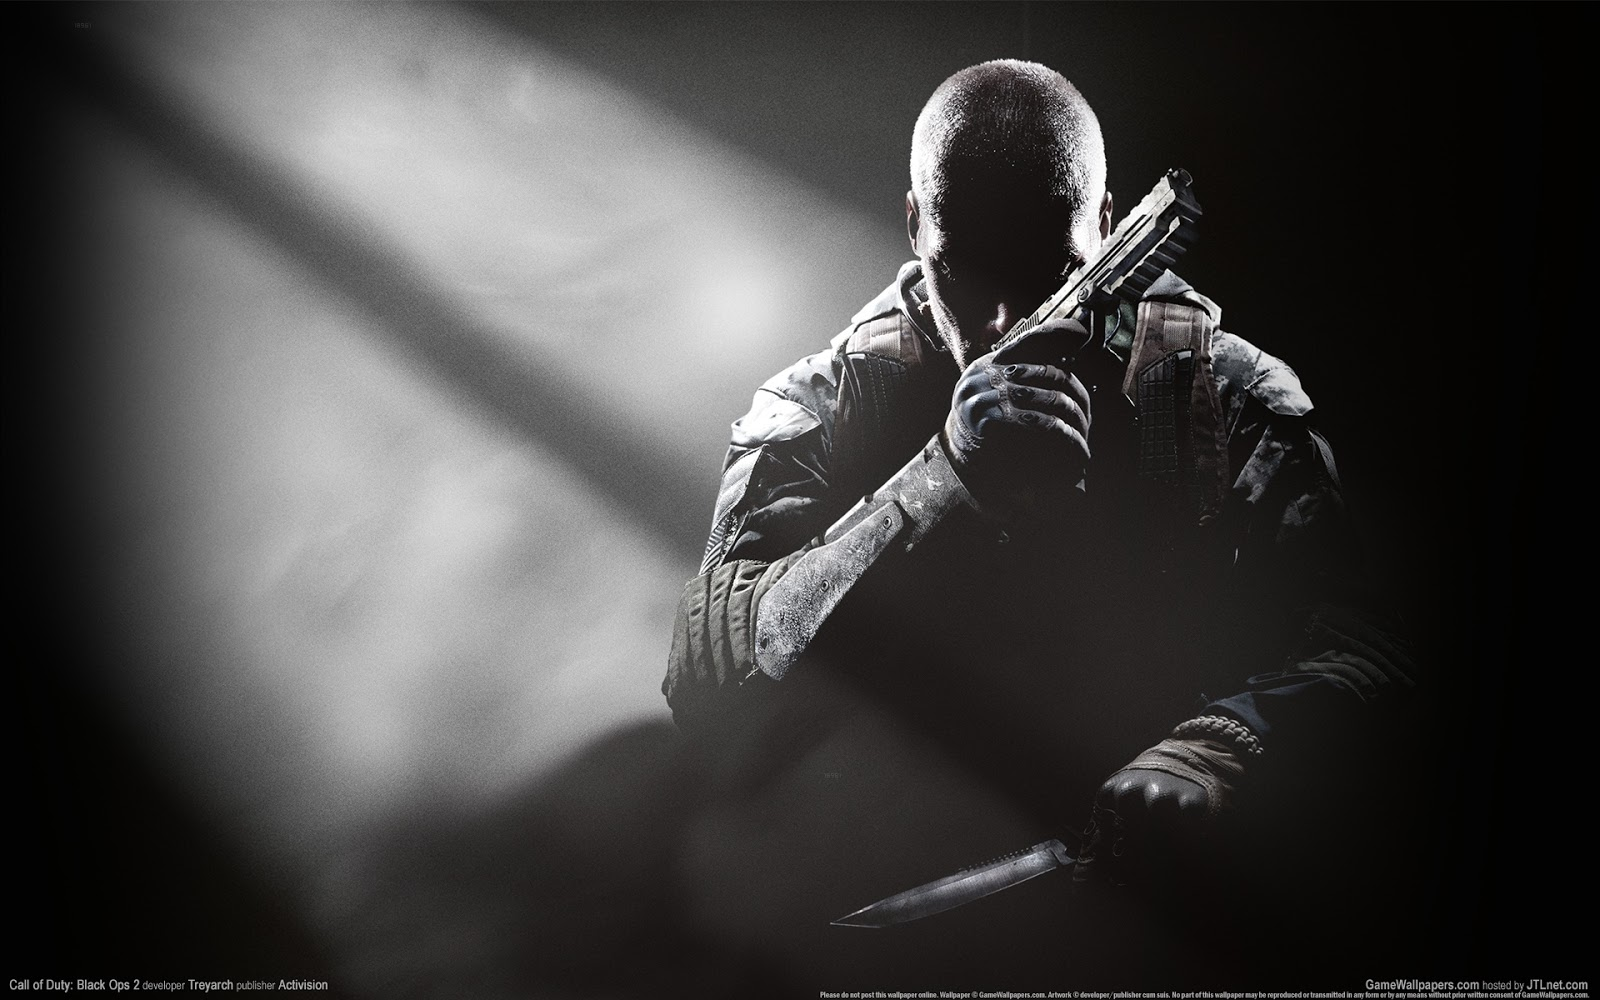 CALL OF DUTY HD WALLPAPERS 1920x1080 ~ Hd Wallpapery